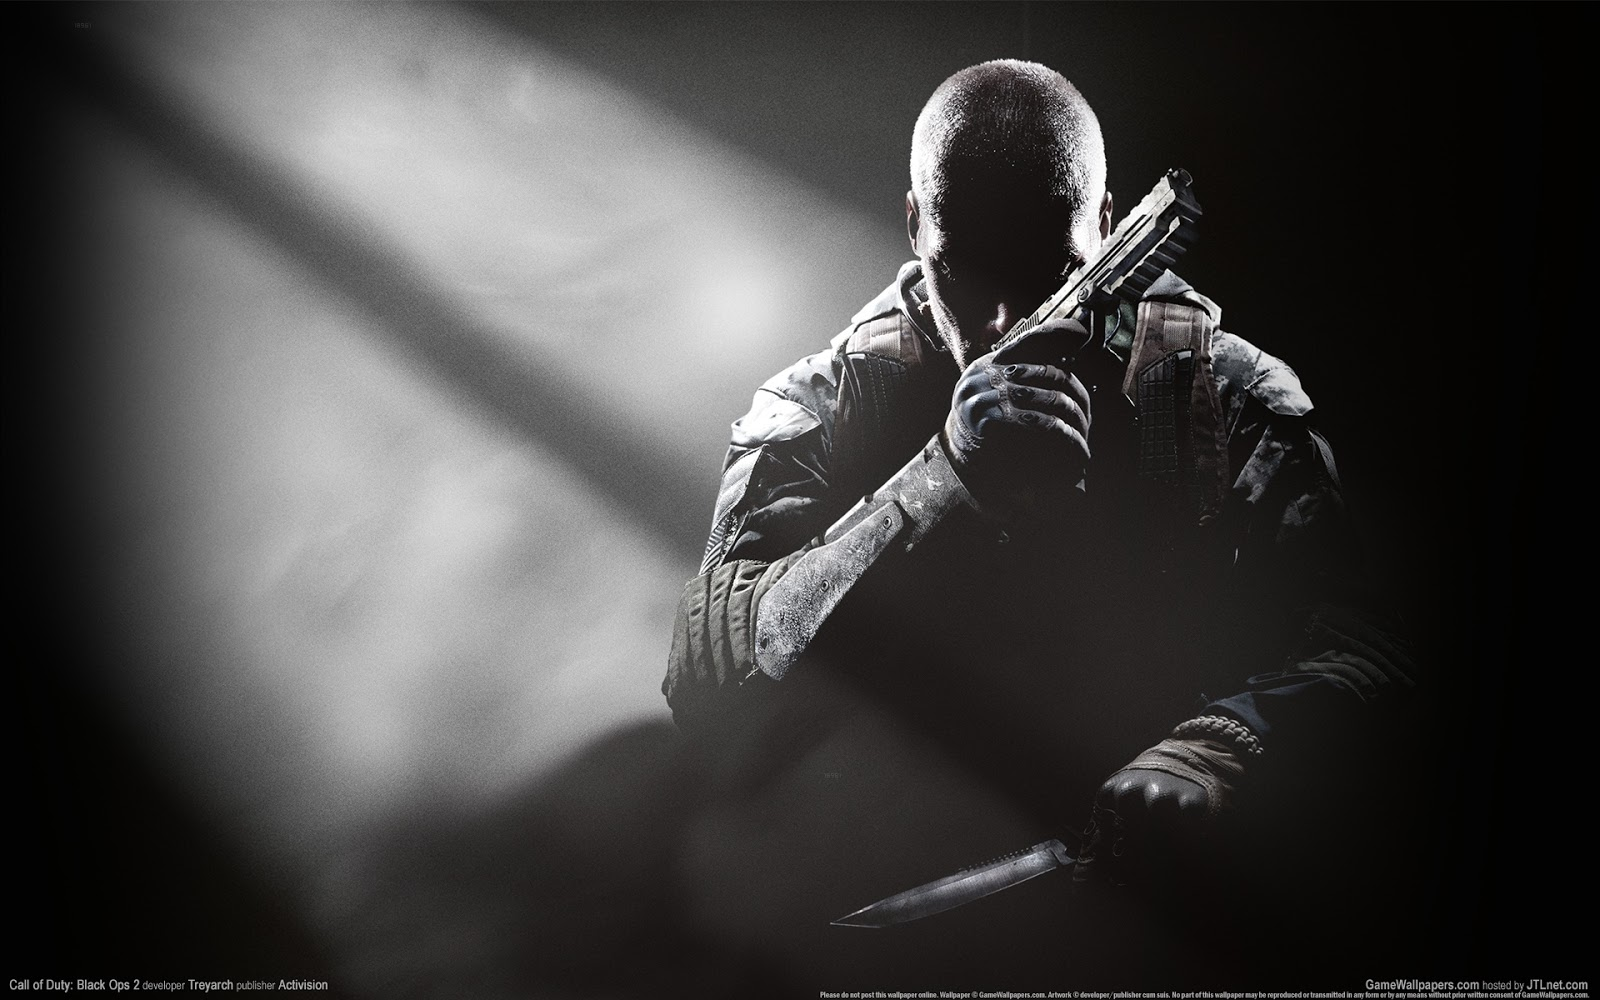 CALL OF DUTY HD WALLPAPERS 1920x1080 ~ Hd Wallpapery